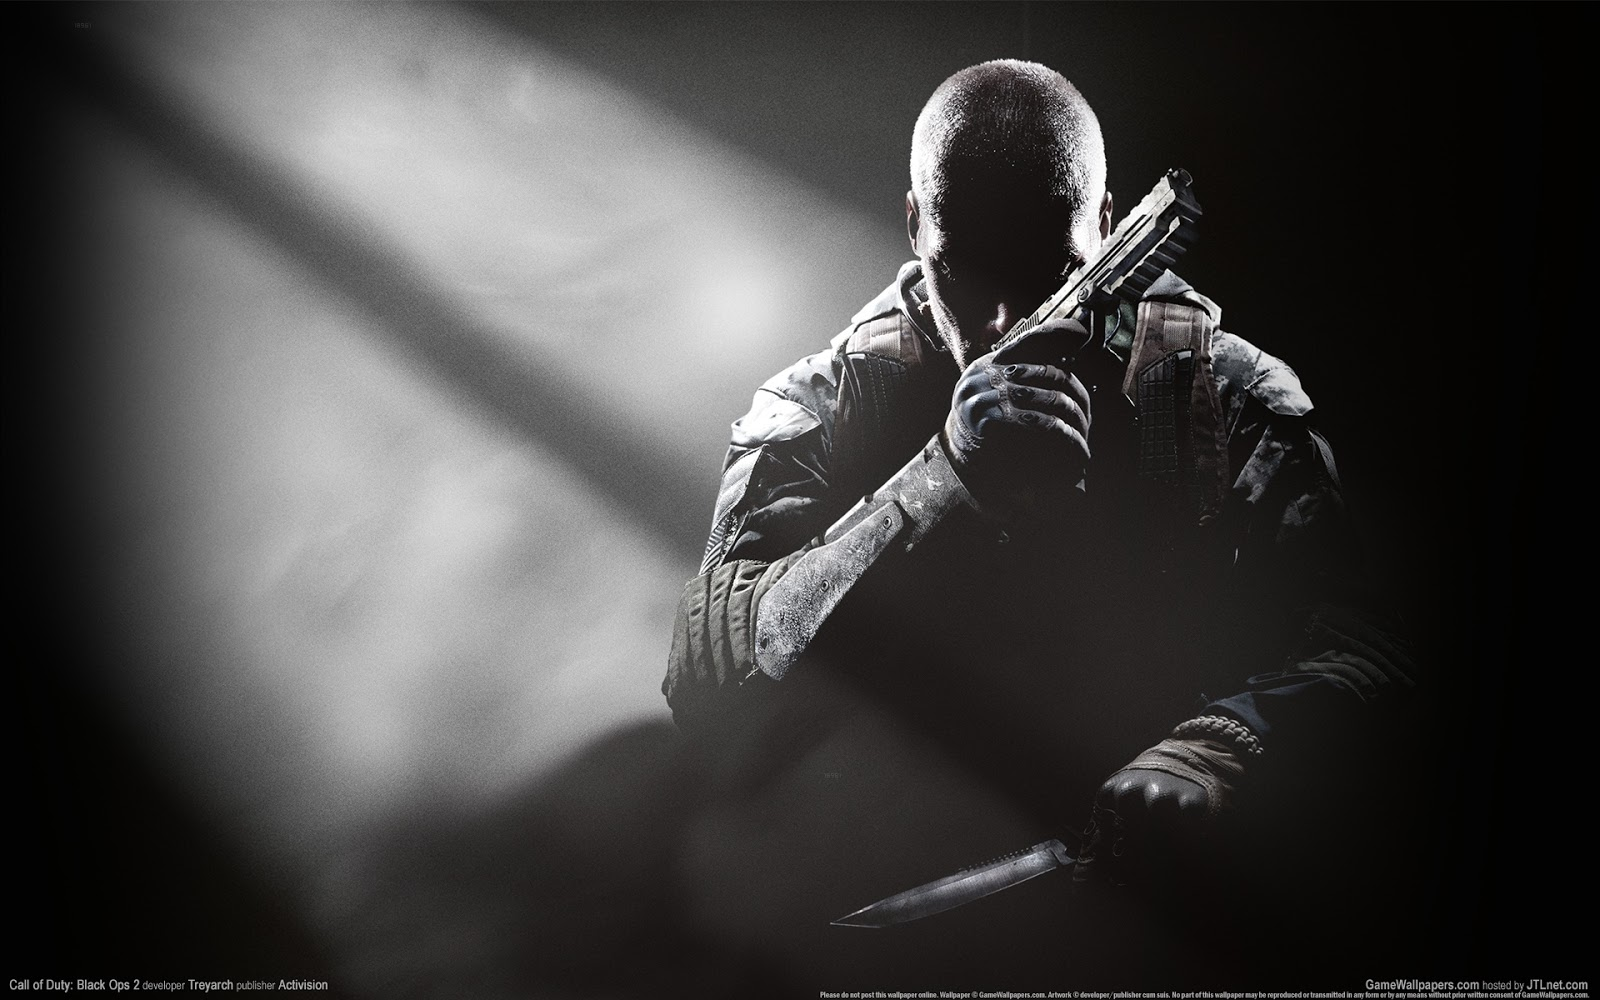 CALL OF DUTY HD WALLPAPERS 1920x1080 ~ Hd Wallpapery